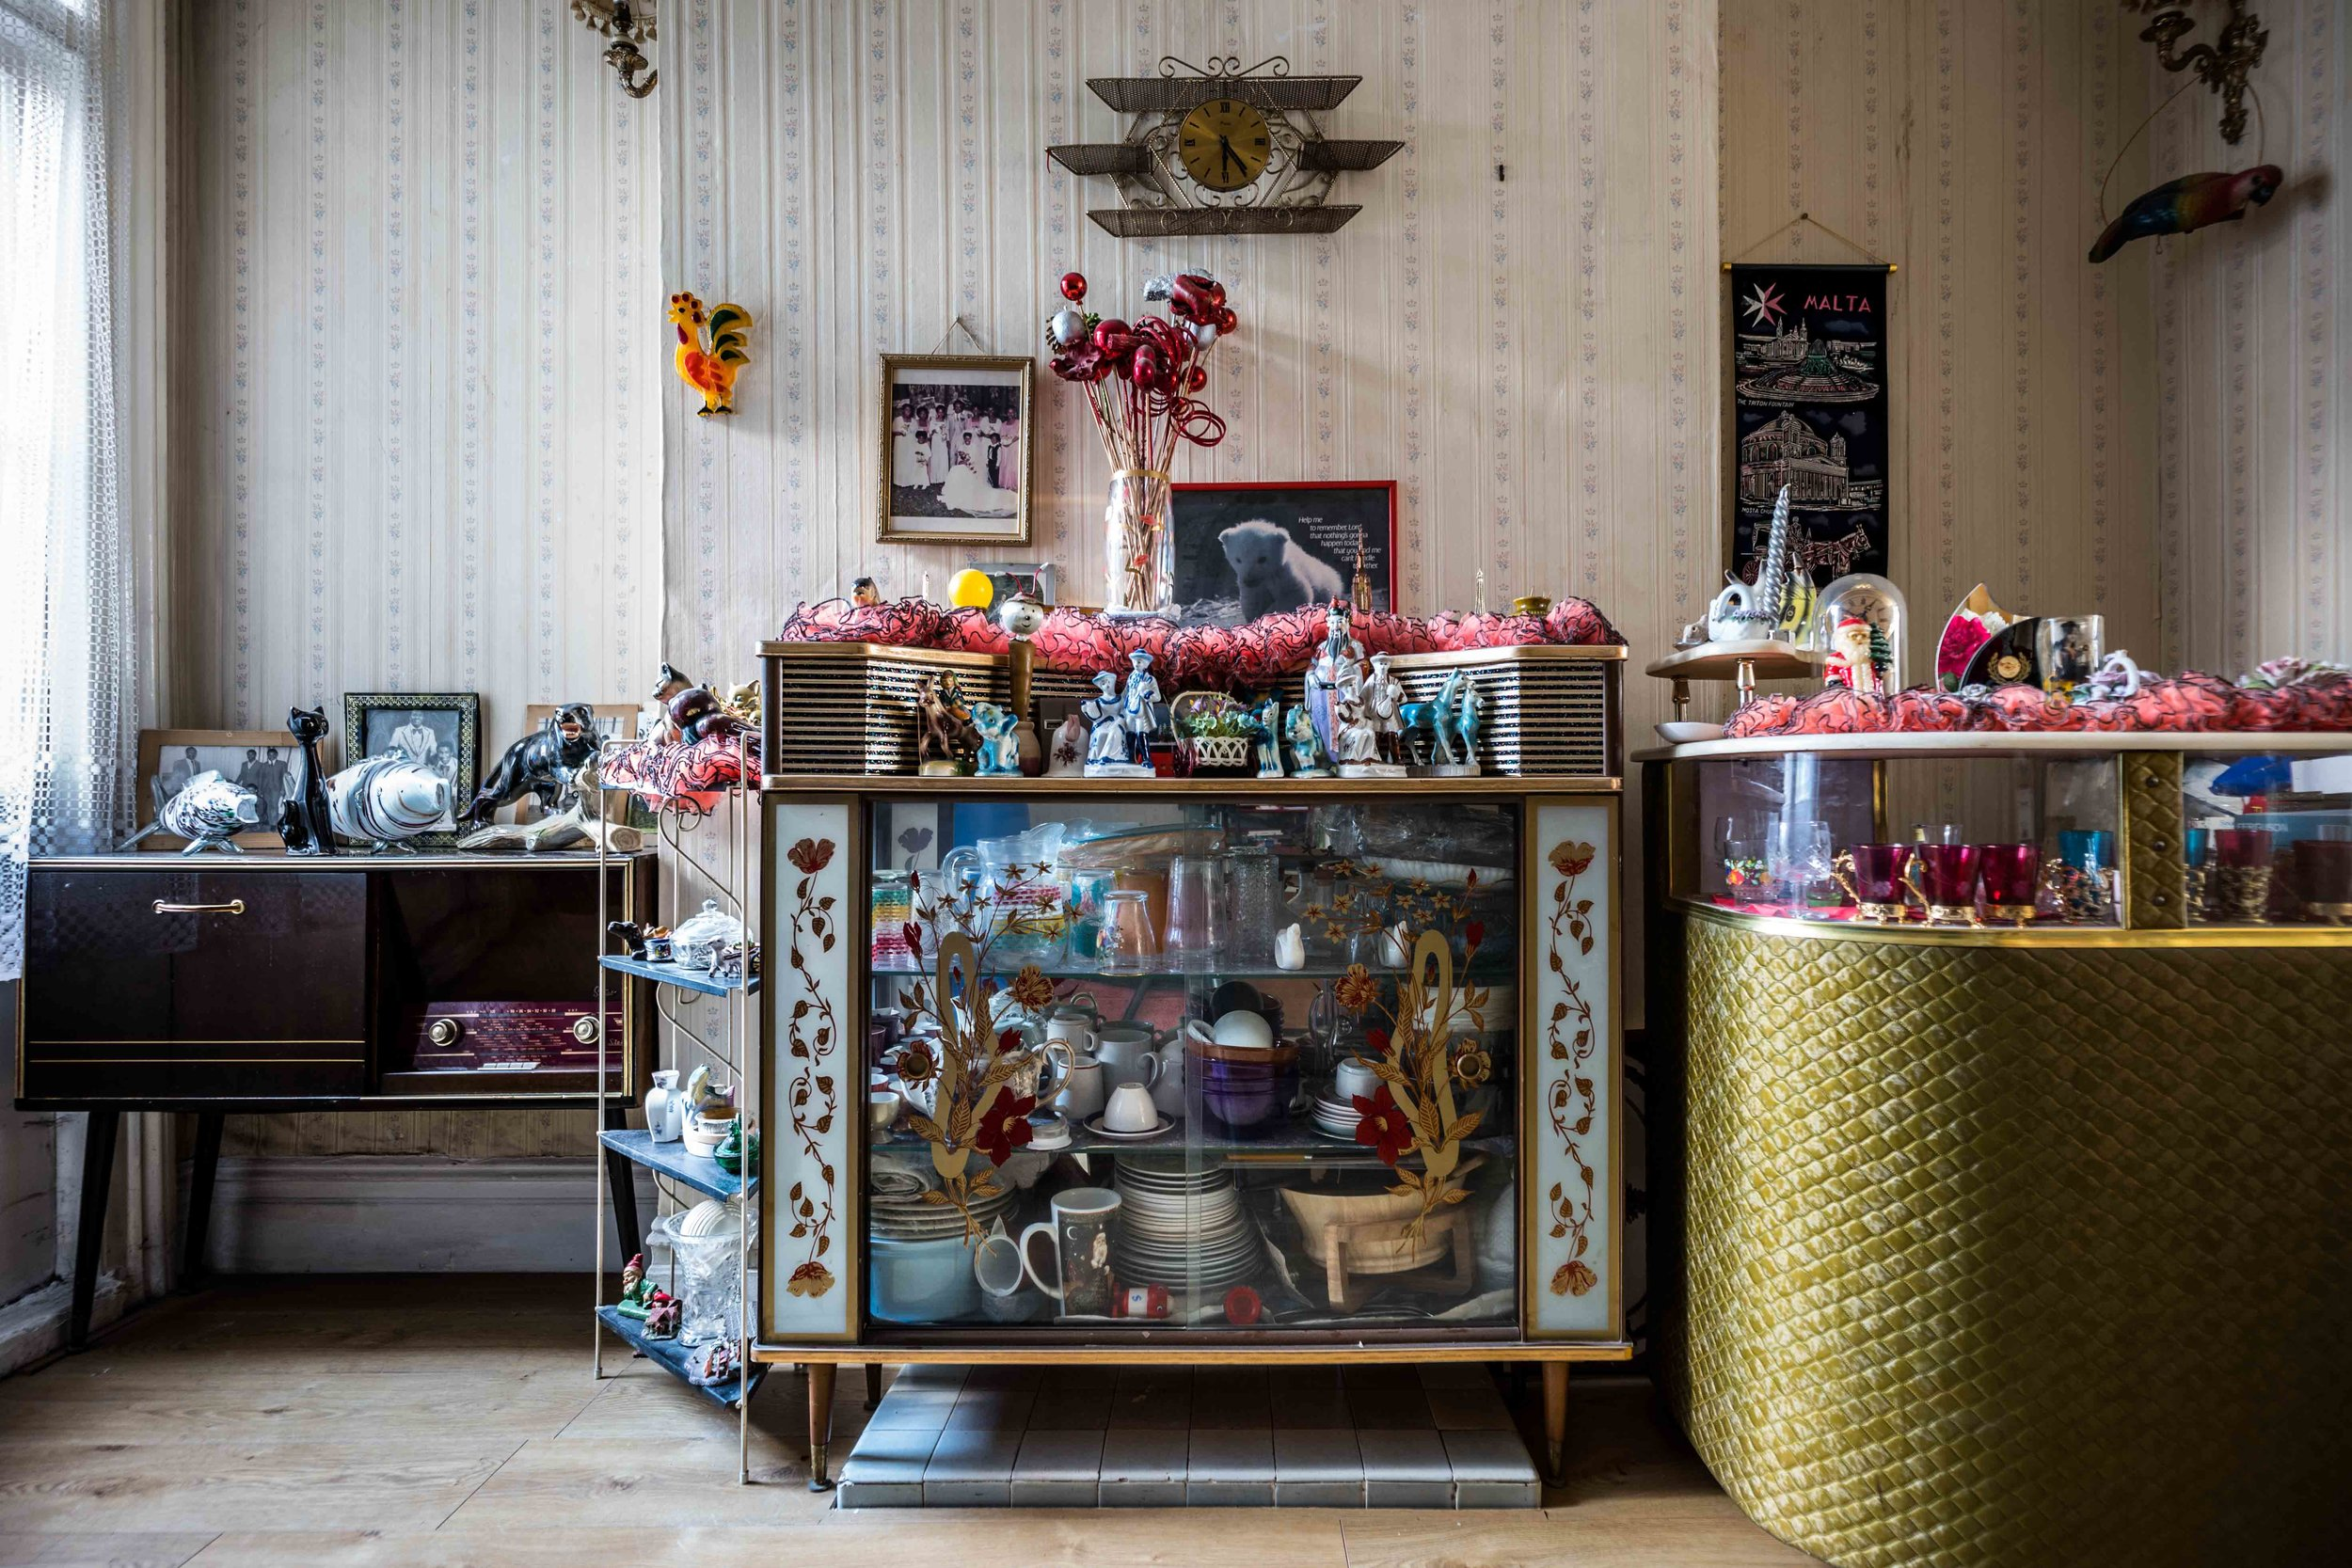 The Jamaican Front Room in a Brixton home. Photo: Jim Grover